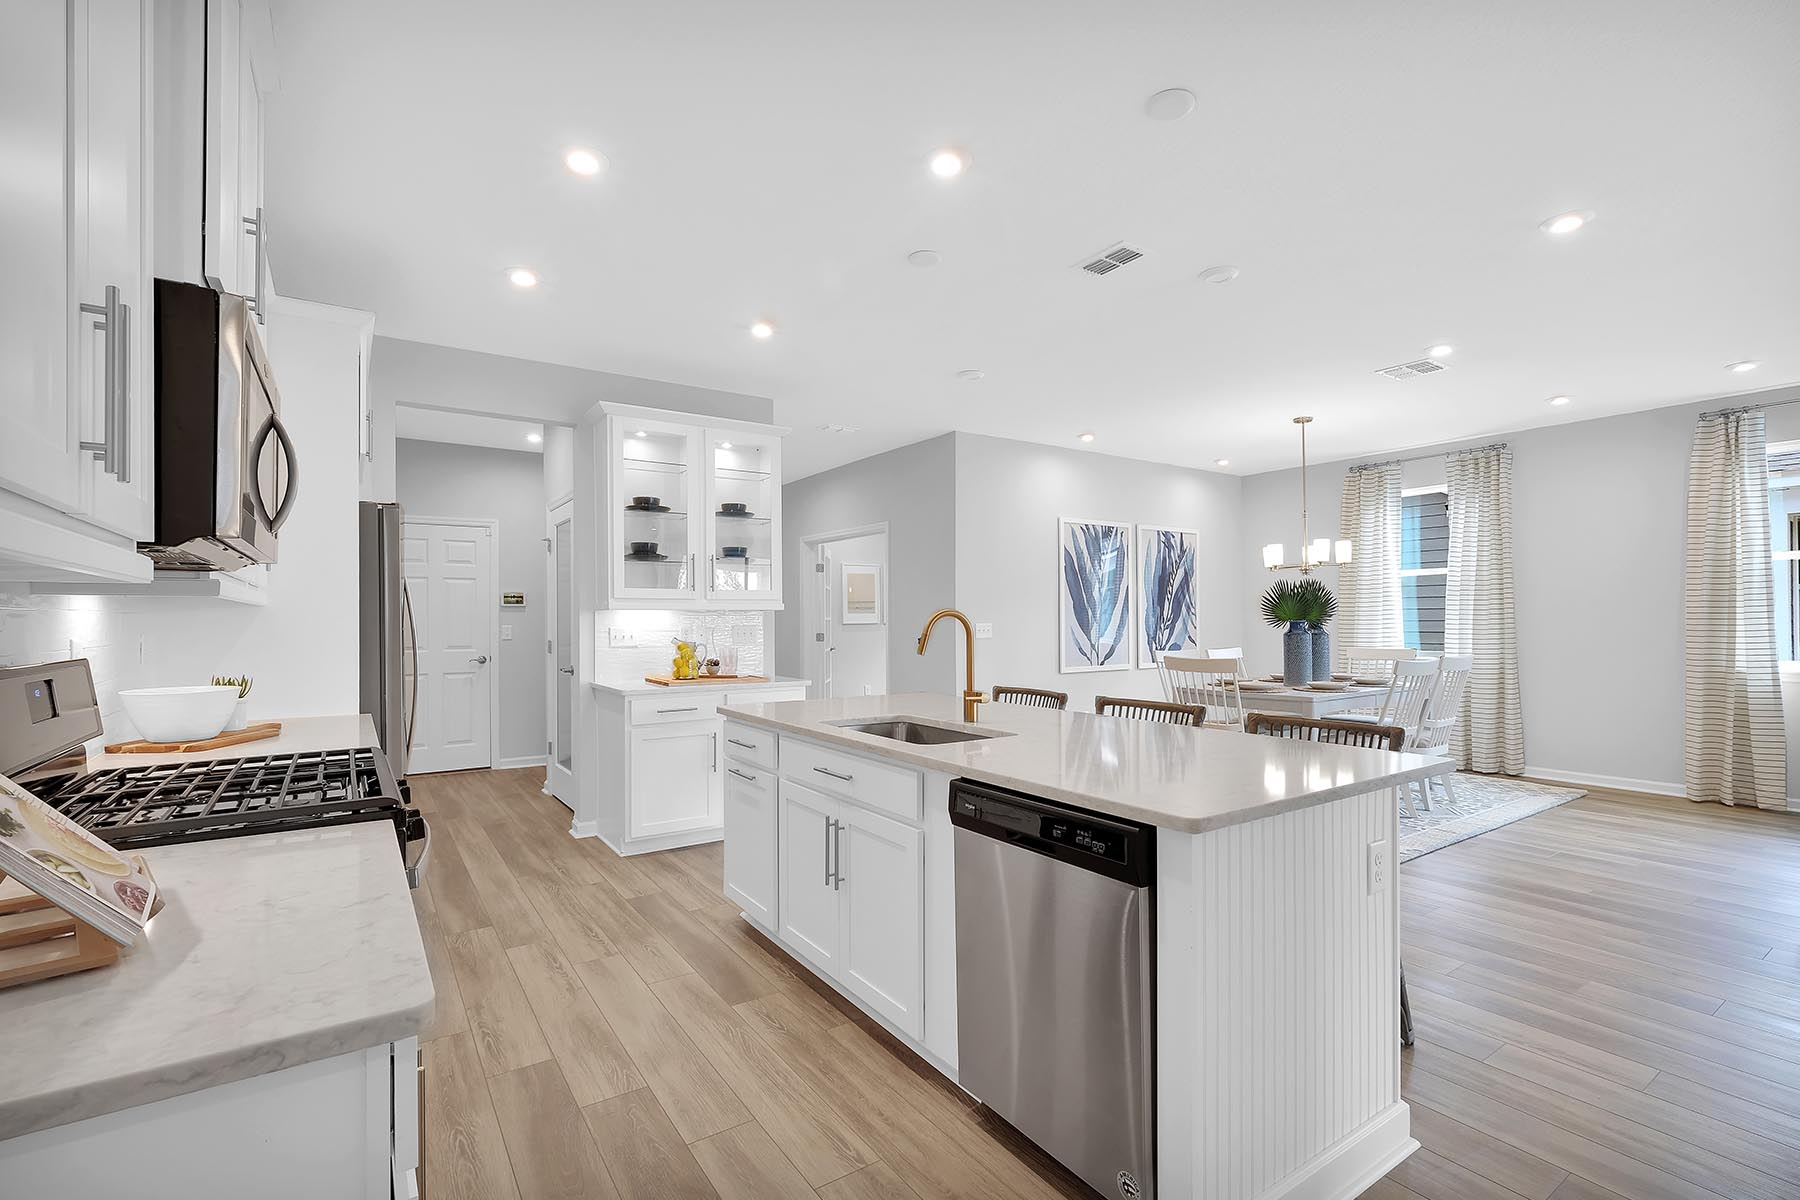 Elm Plan Kitchen at Forest Park at Wildlight in Yulee Florida by Mattamy Homes